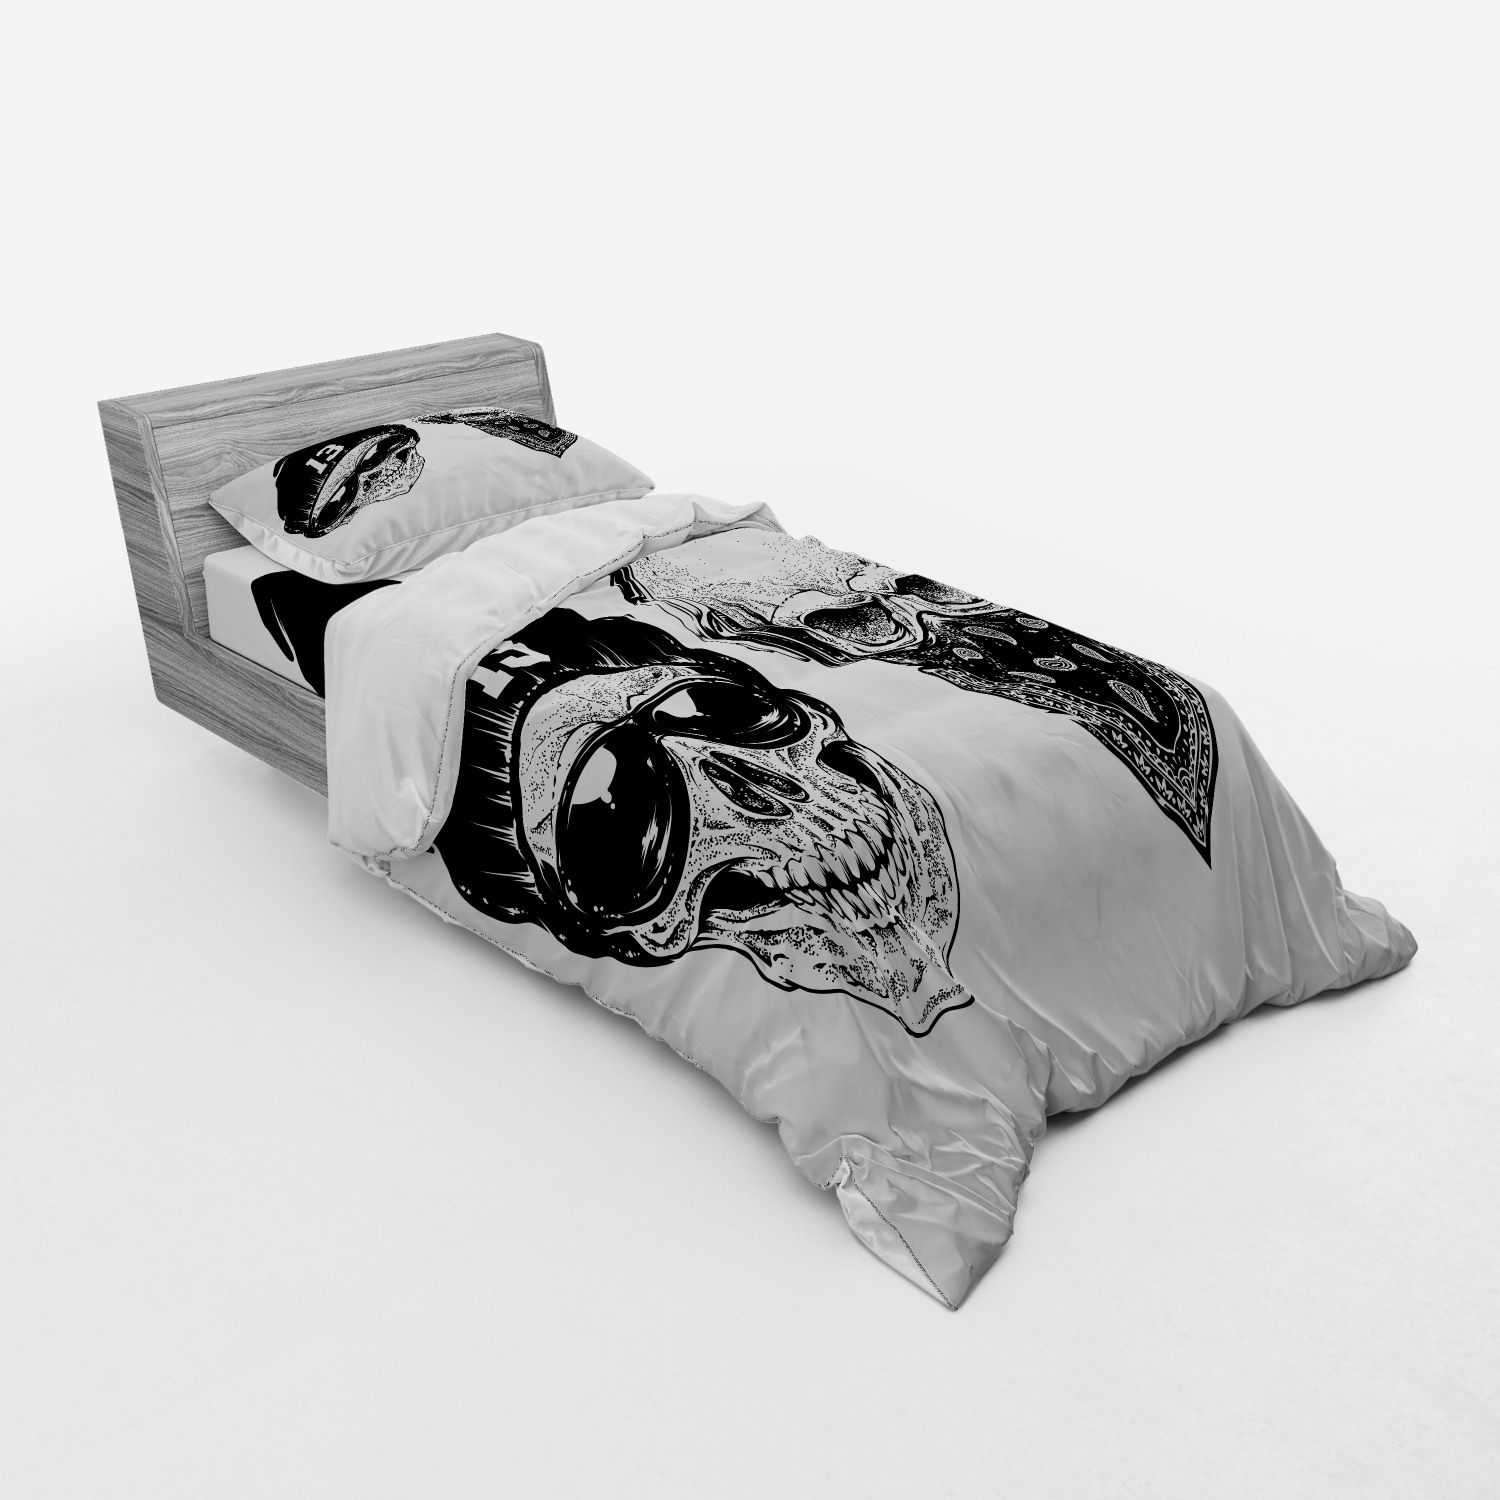 thumbnail 101 - Ambesonne Black White Art Bedding Set Duvet Cover Sham Fitted Sheet in 3 Sizes